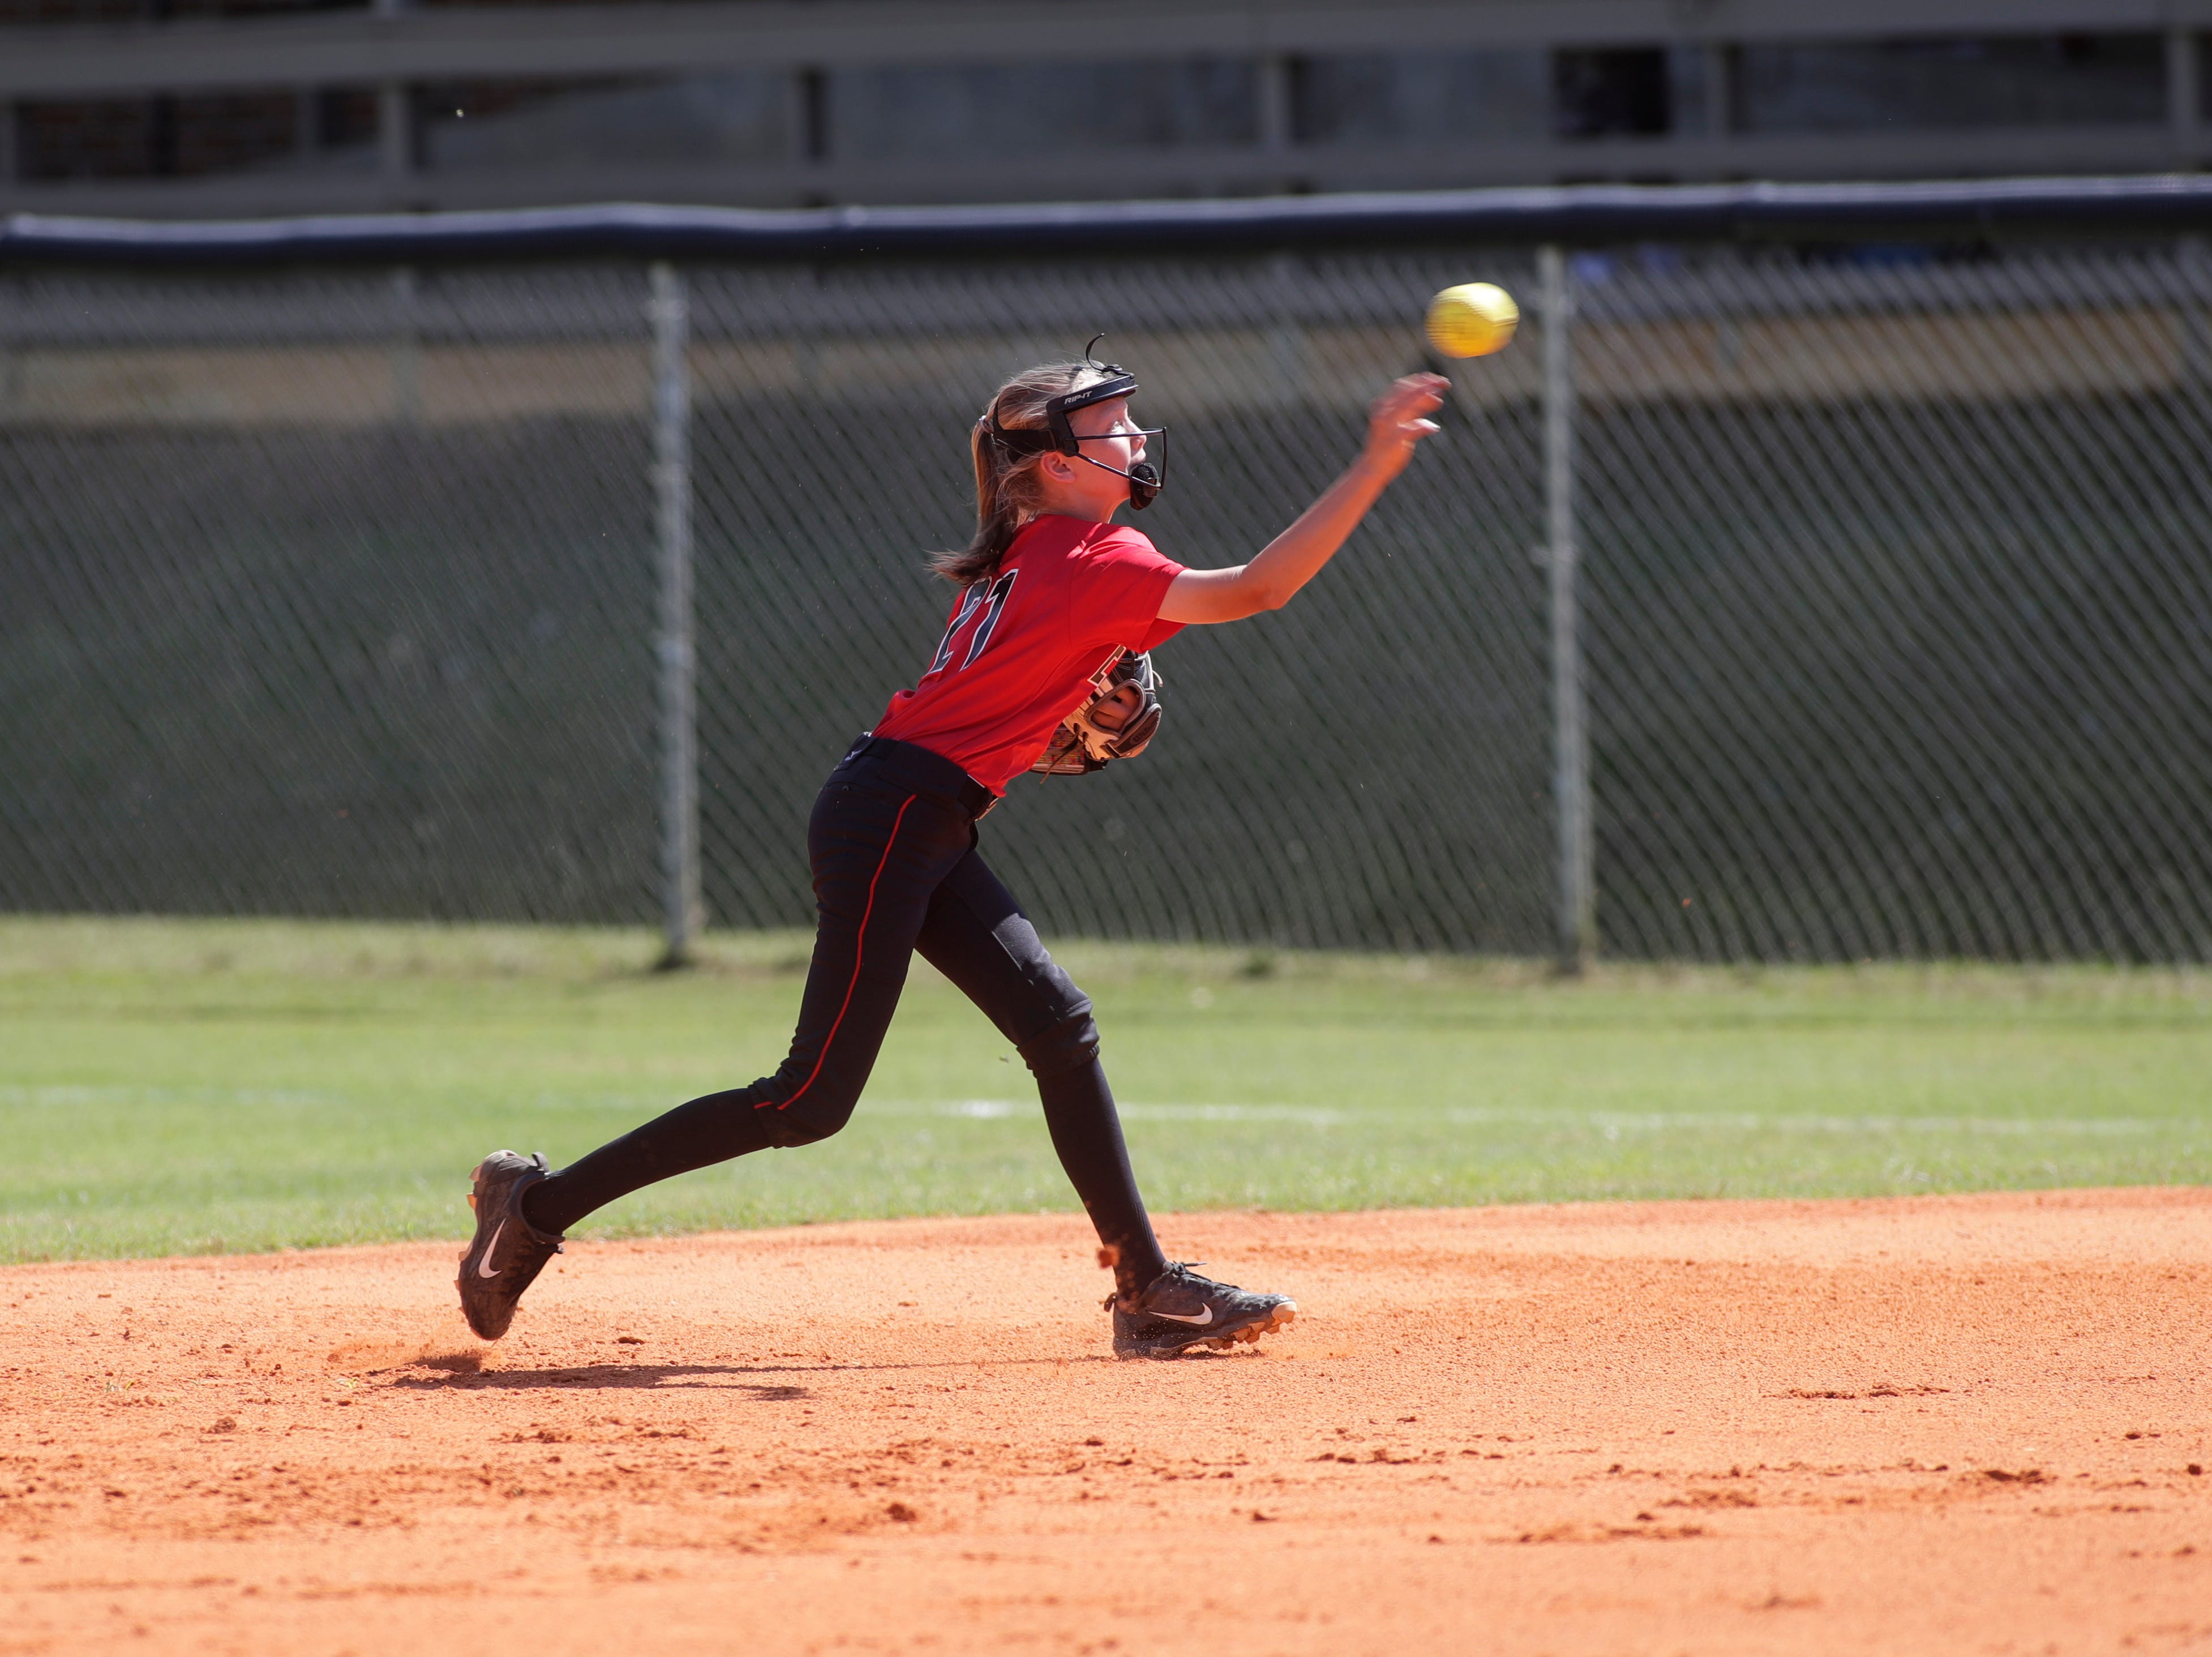 North Florida Christian's Madison Driggers (21) throws to first during the 1-3A regional final game between NFC and University Christian at NFC Tuesday, May 14, 2019. UC defeated NFC 16 to 11 to advance to the state tournament.